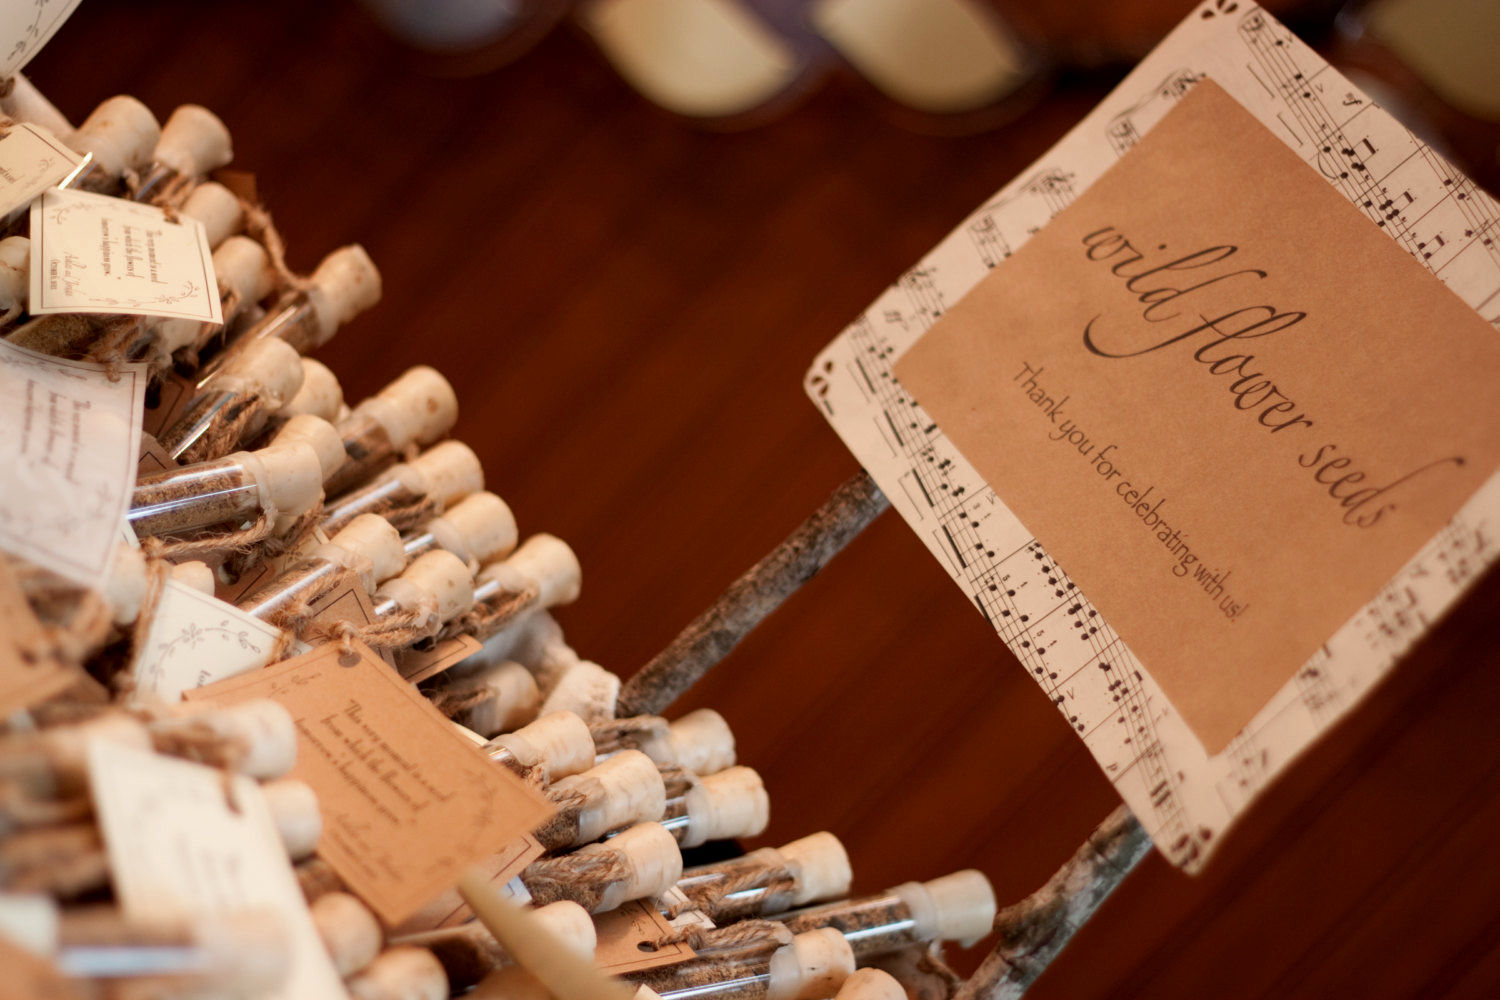 Diy rustic wedding favor ideas